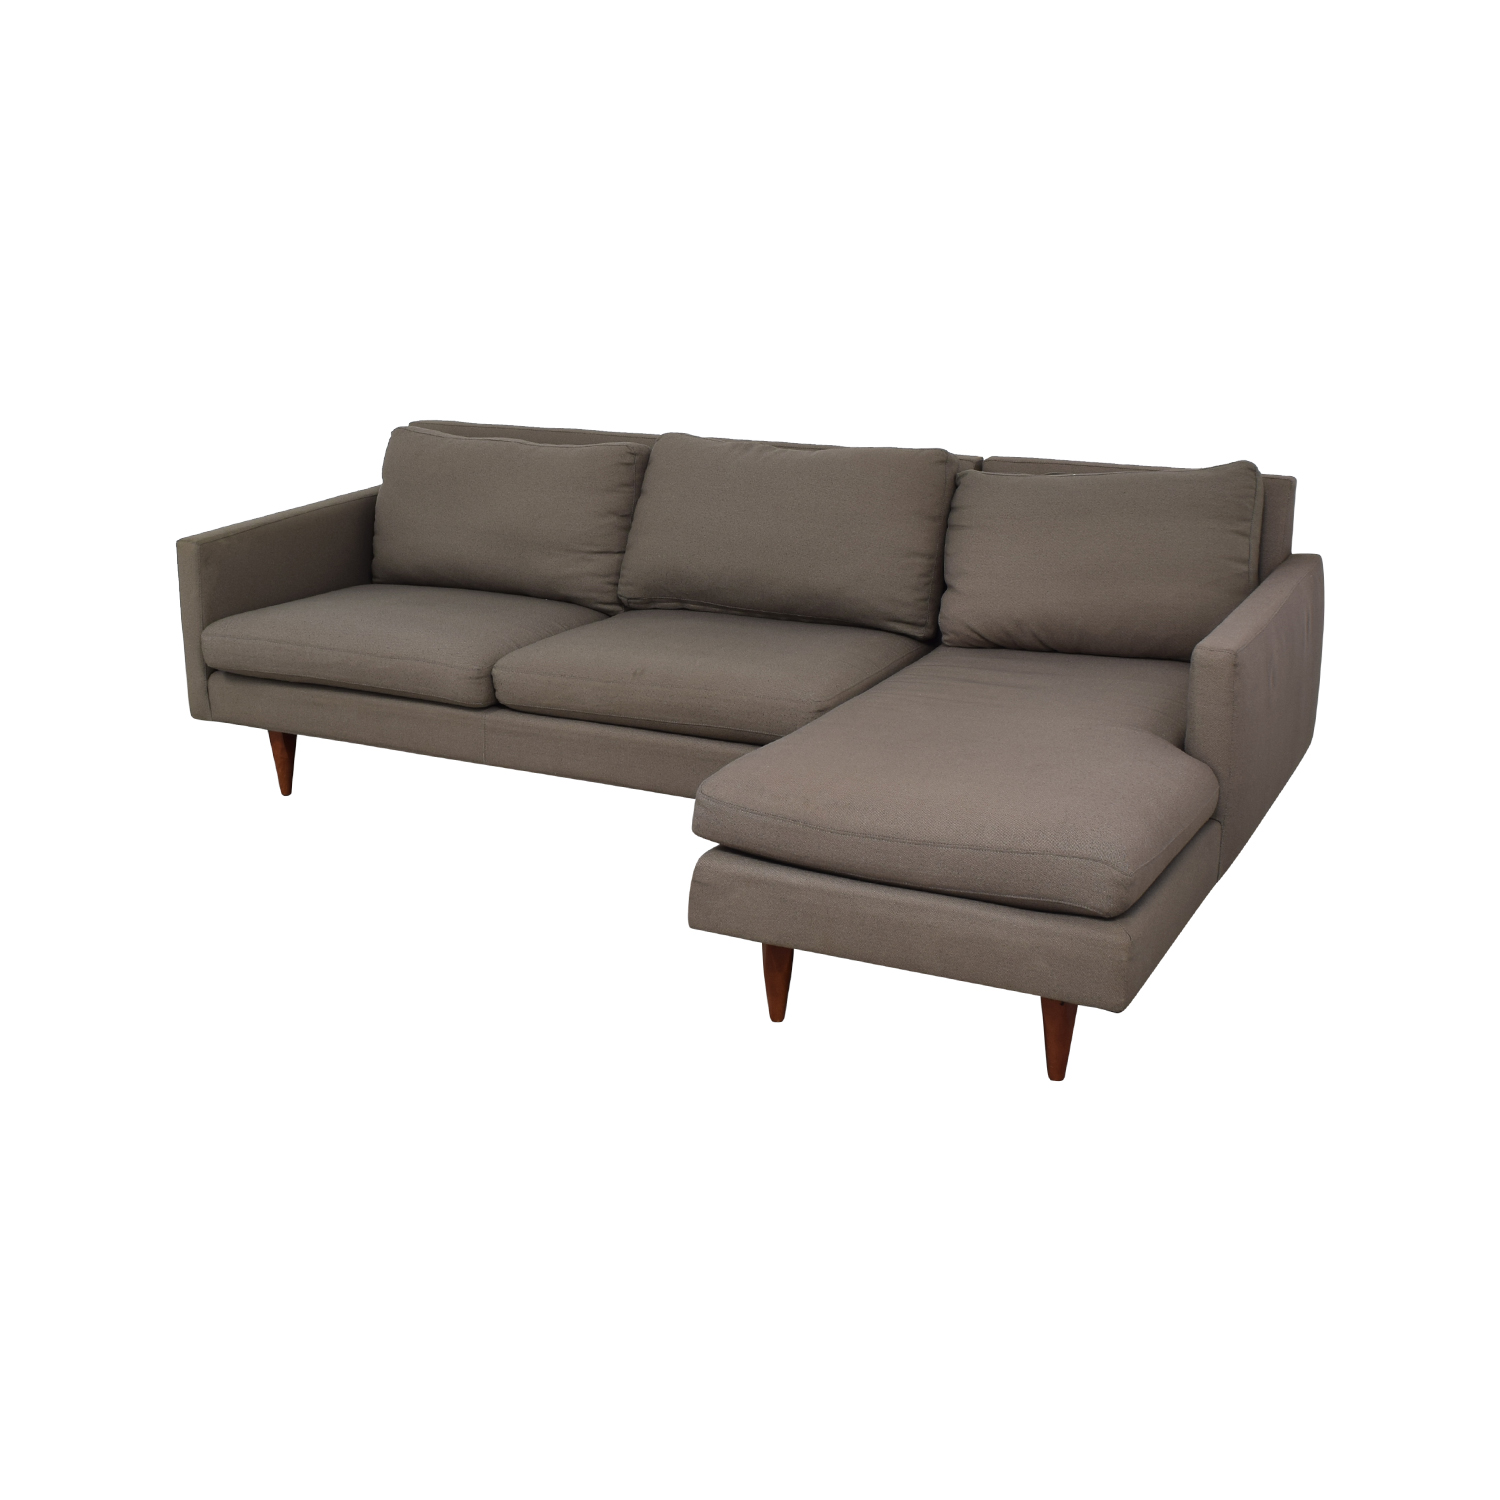 Room & Board Room & Board Jasper Grey Chaise Sectional second hand